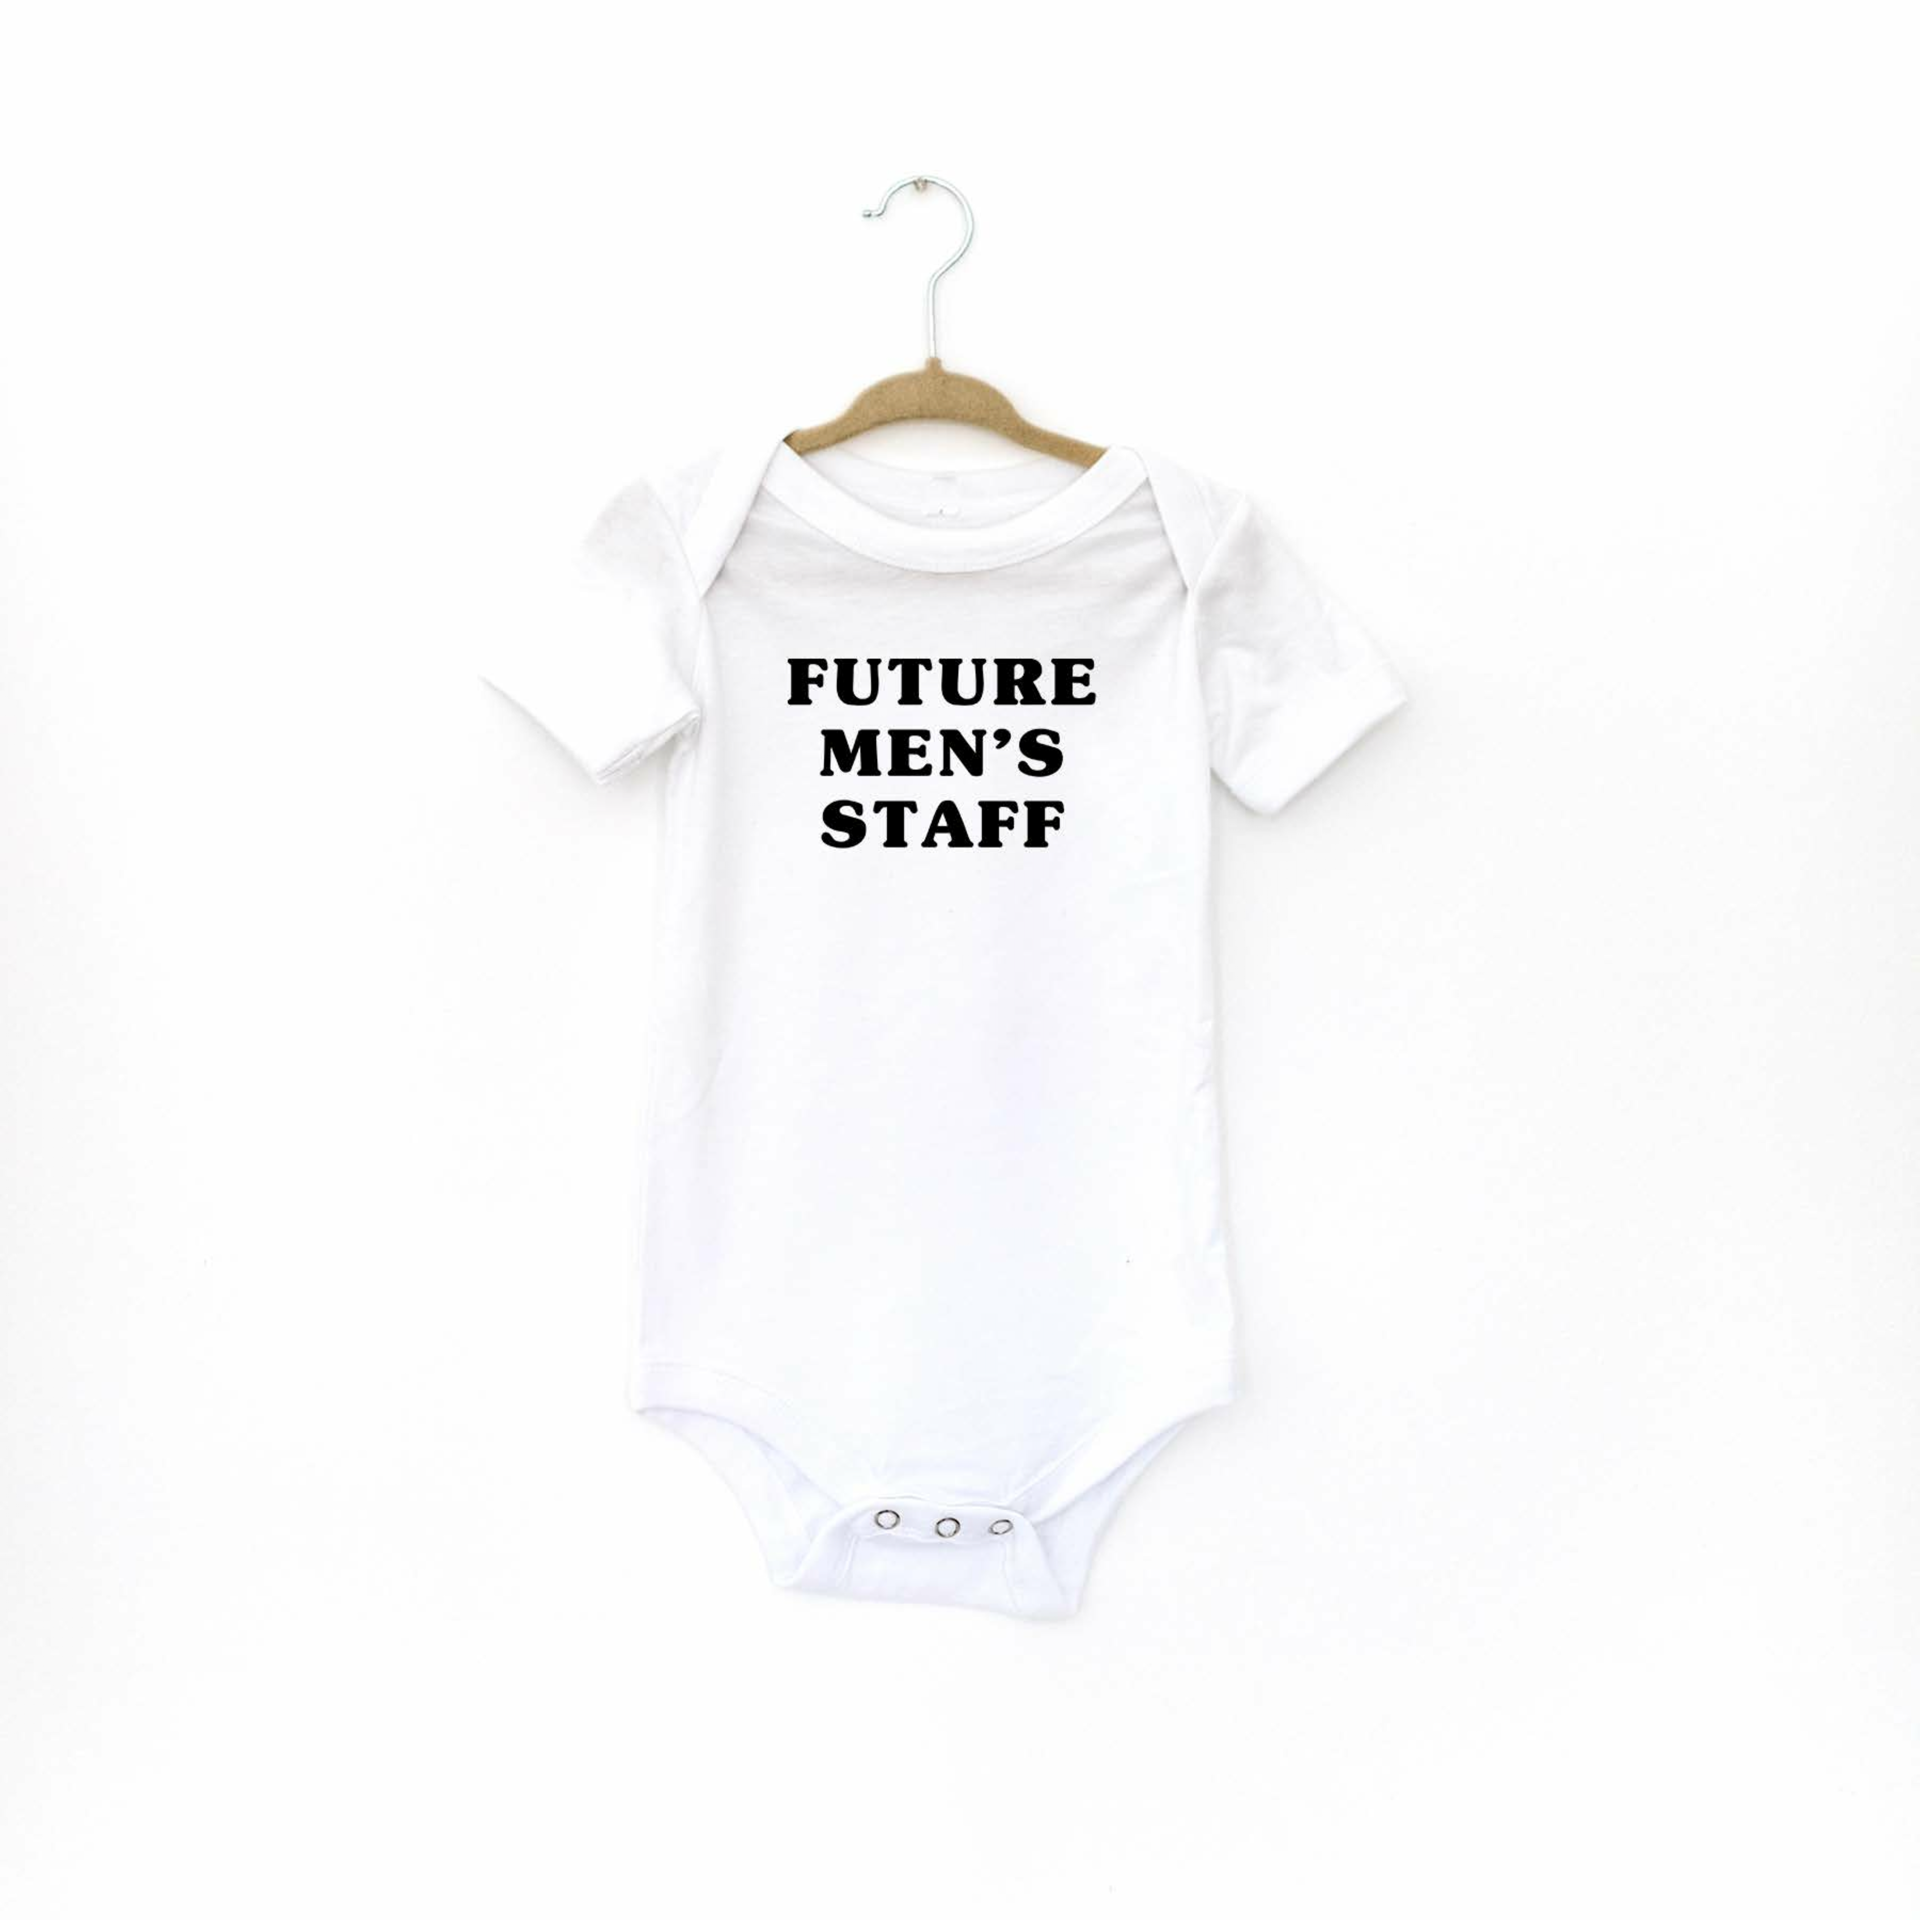 Picture of Future Men's Staff Baby Onesie